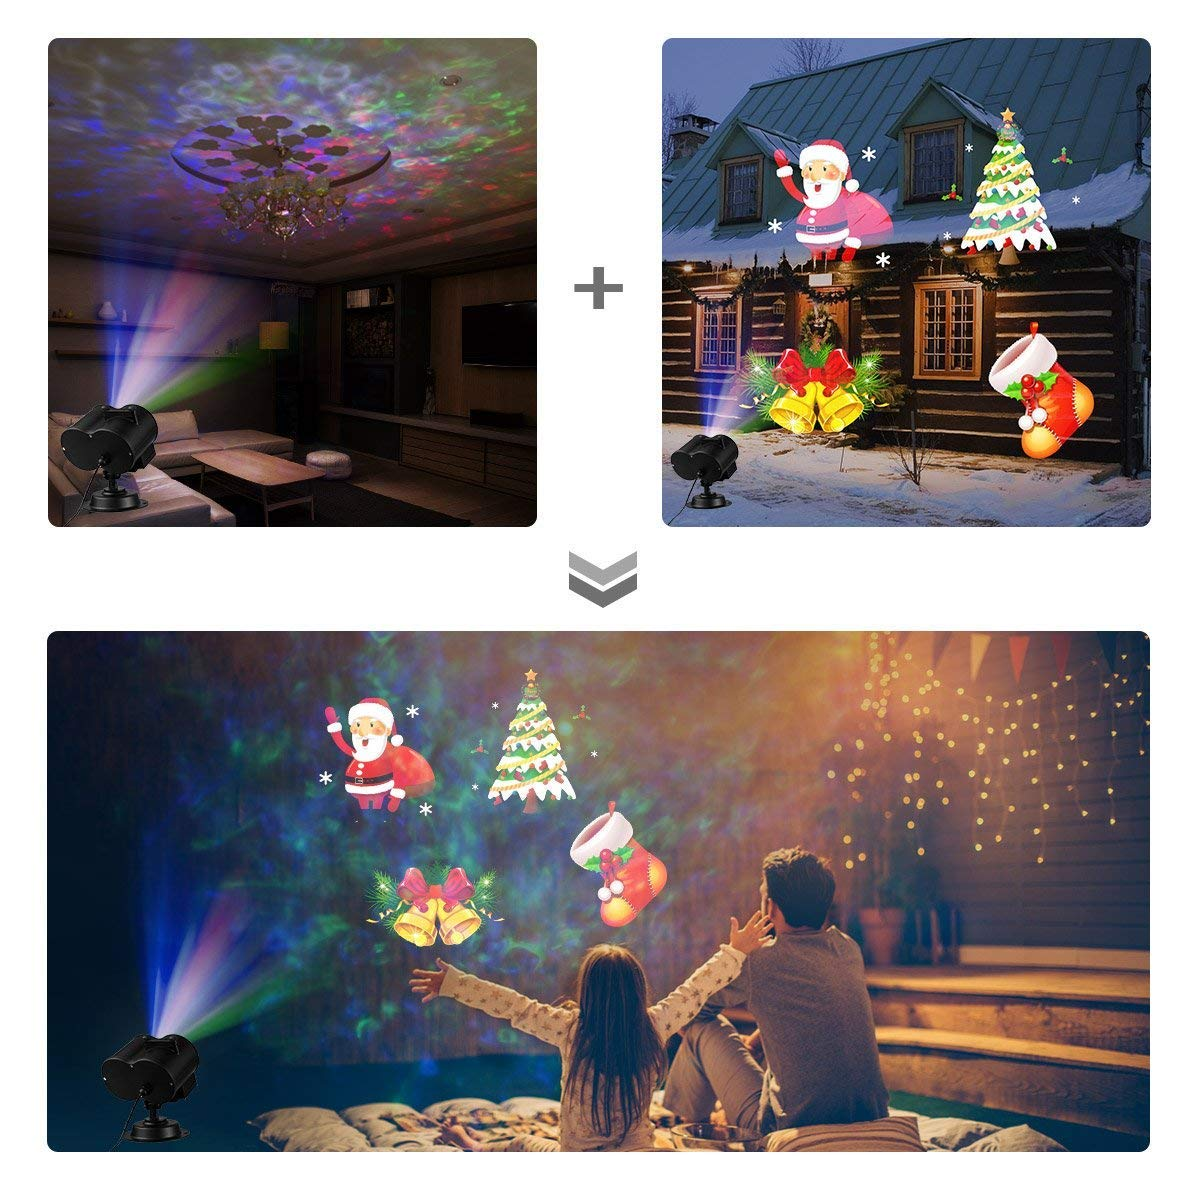 star shower window wonderland led projector lights outdoorindoor christmas halloween decorations mcgradyxm 12 movies